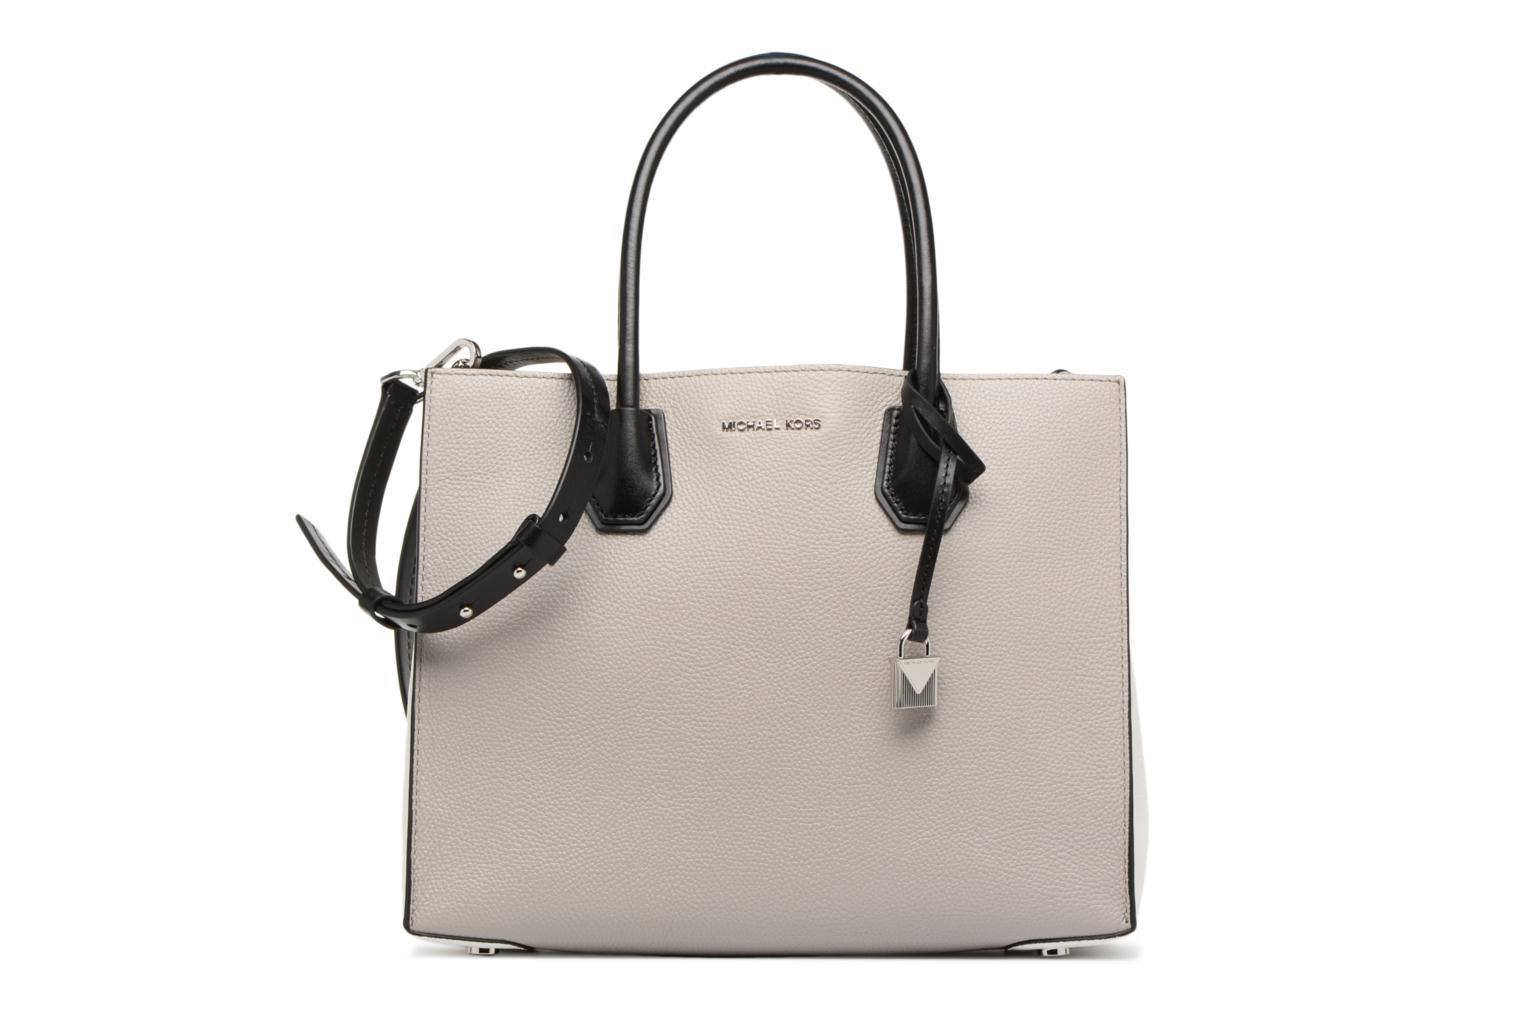 MERCER LG CONV TOTE 154 PEARL GREY OPTIC WHITE BLACK